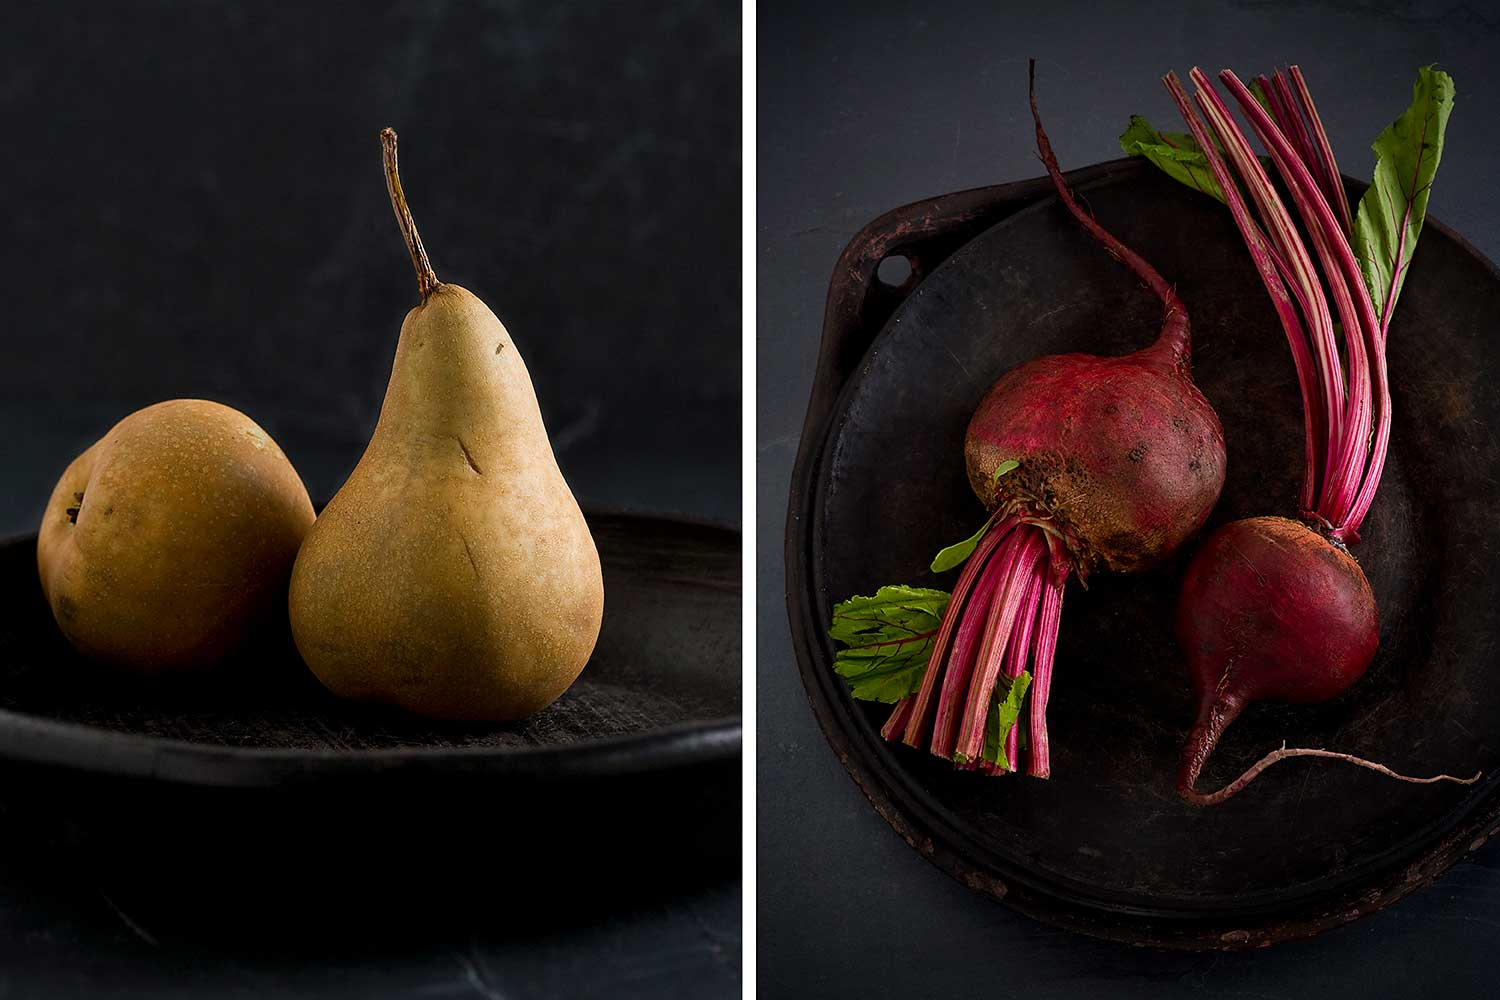 Pears and radishes